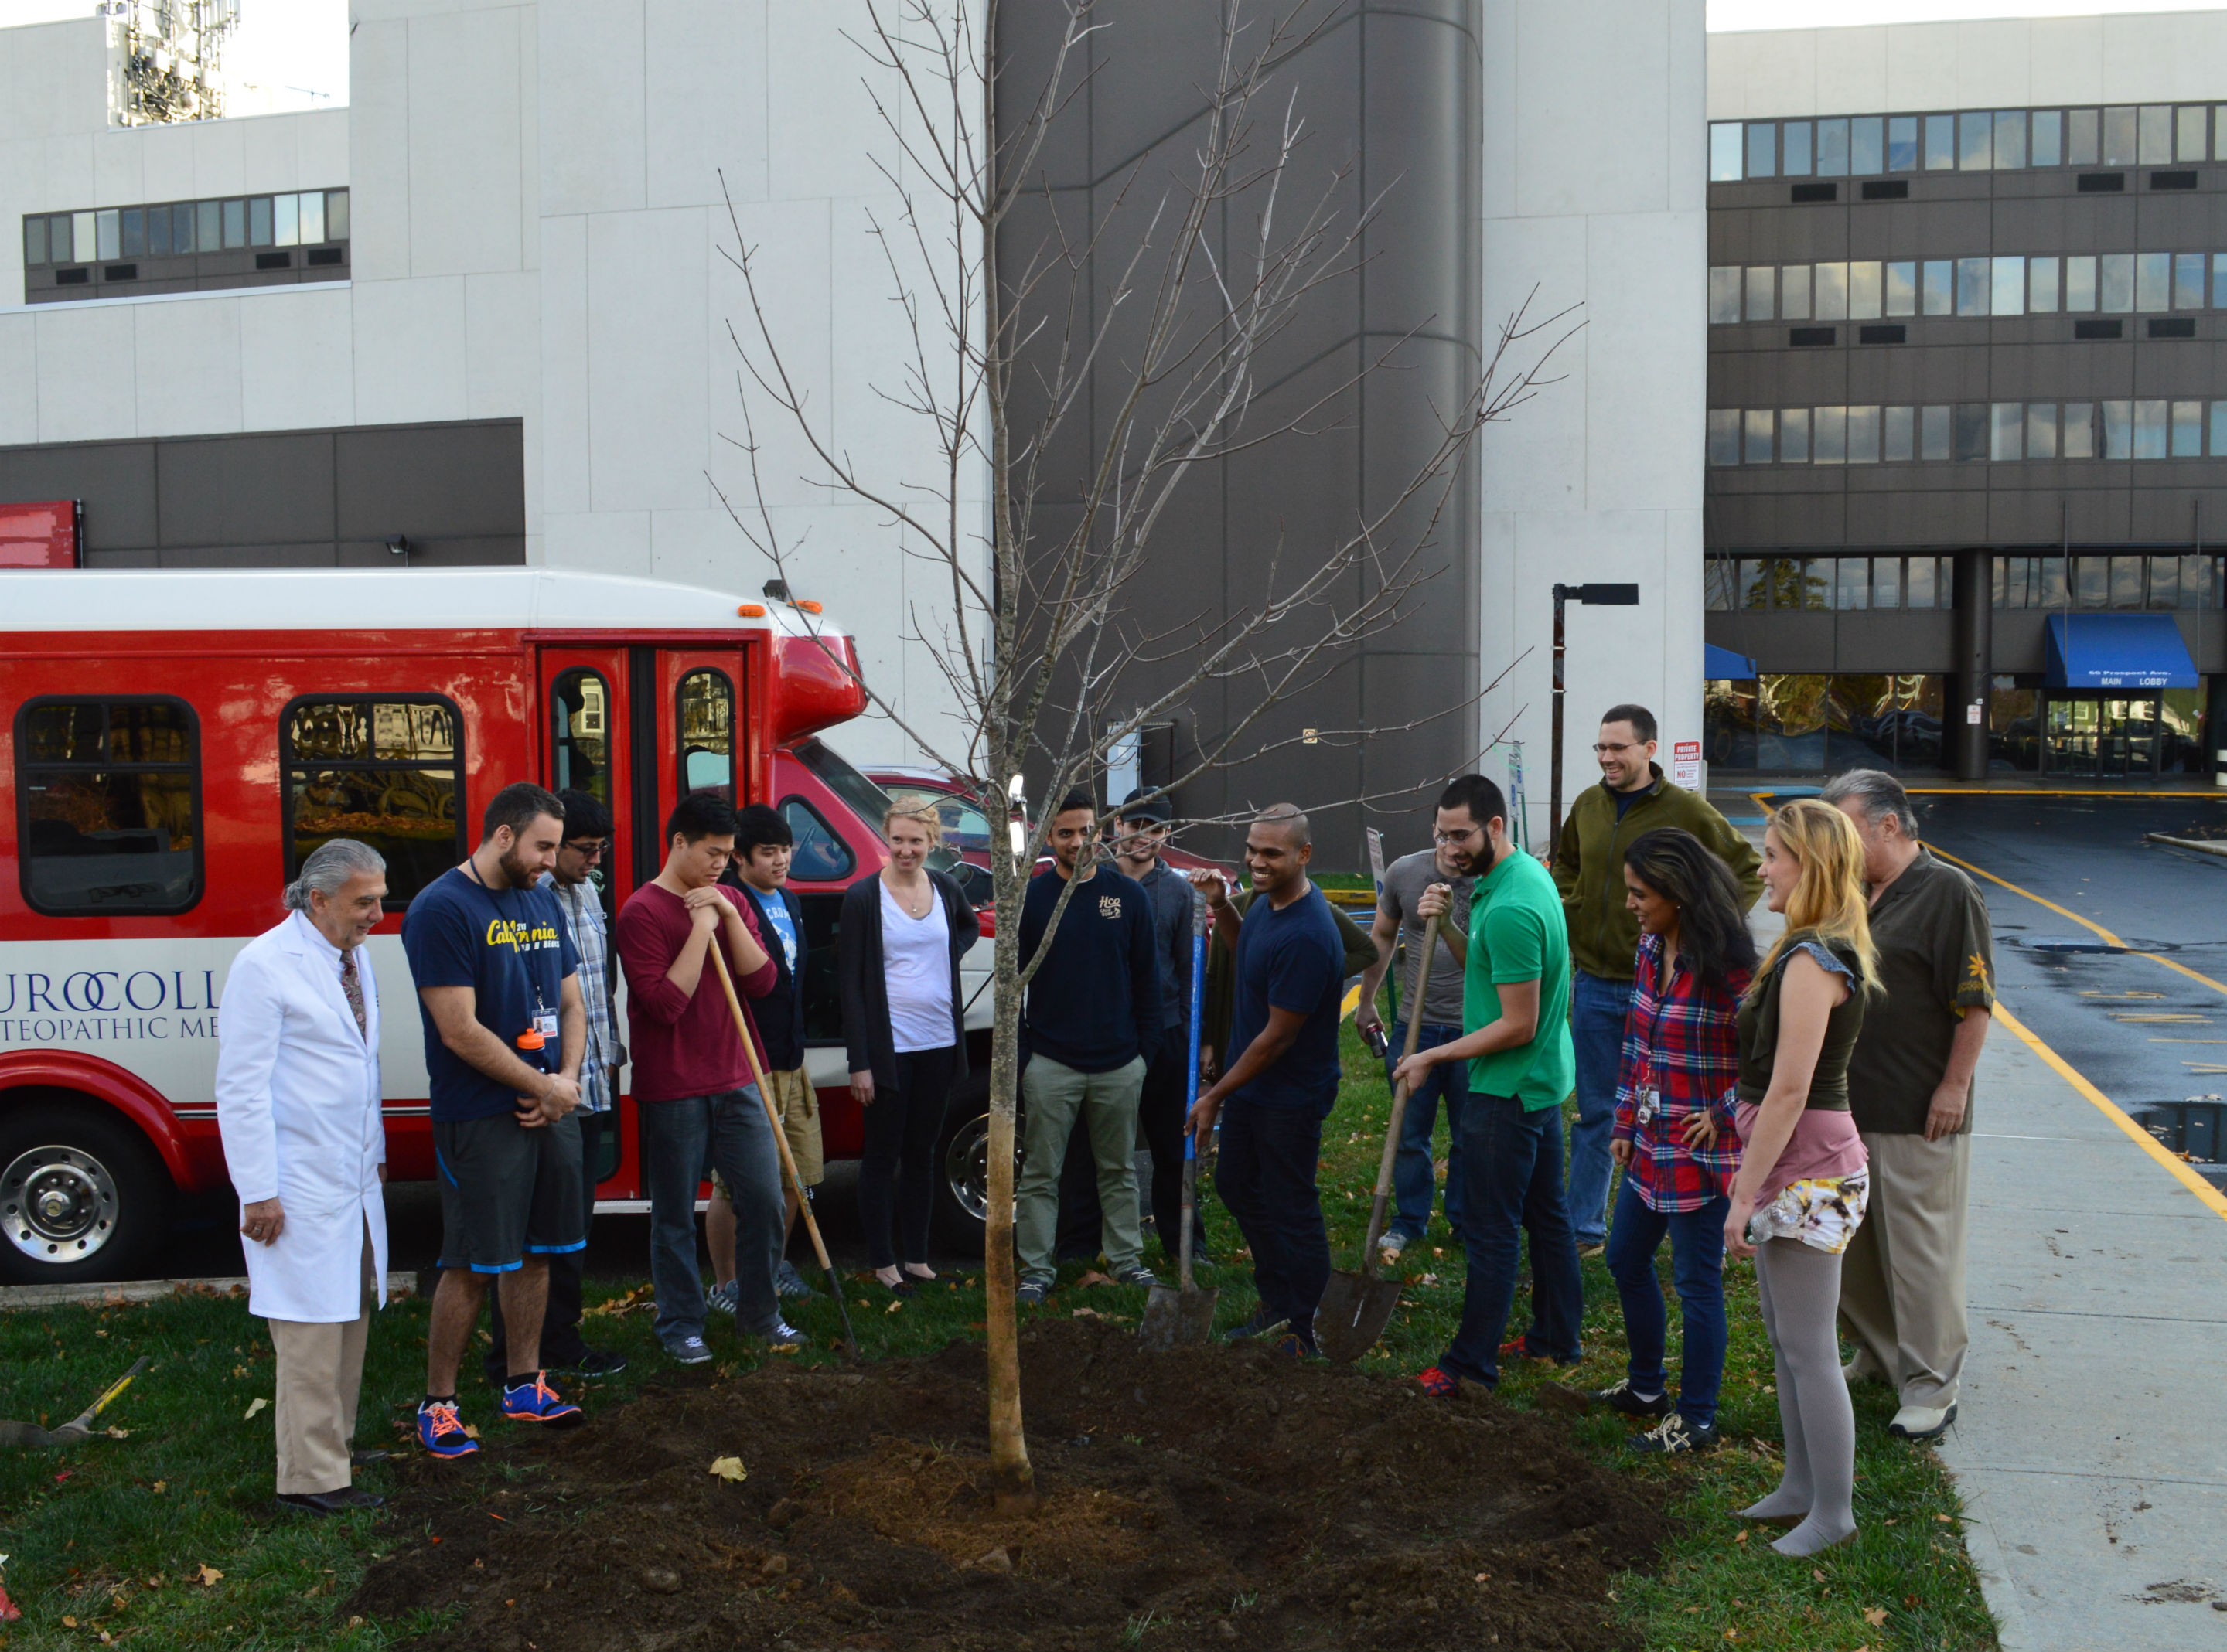 Students from the class of 2018, and faculty, gather around the newly planted Crimson King maple tree during its dedication ceremony.